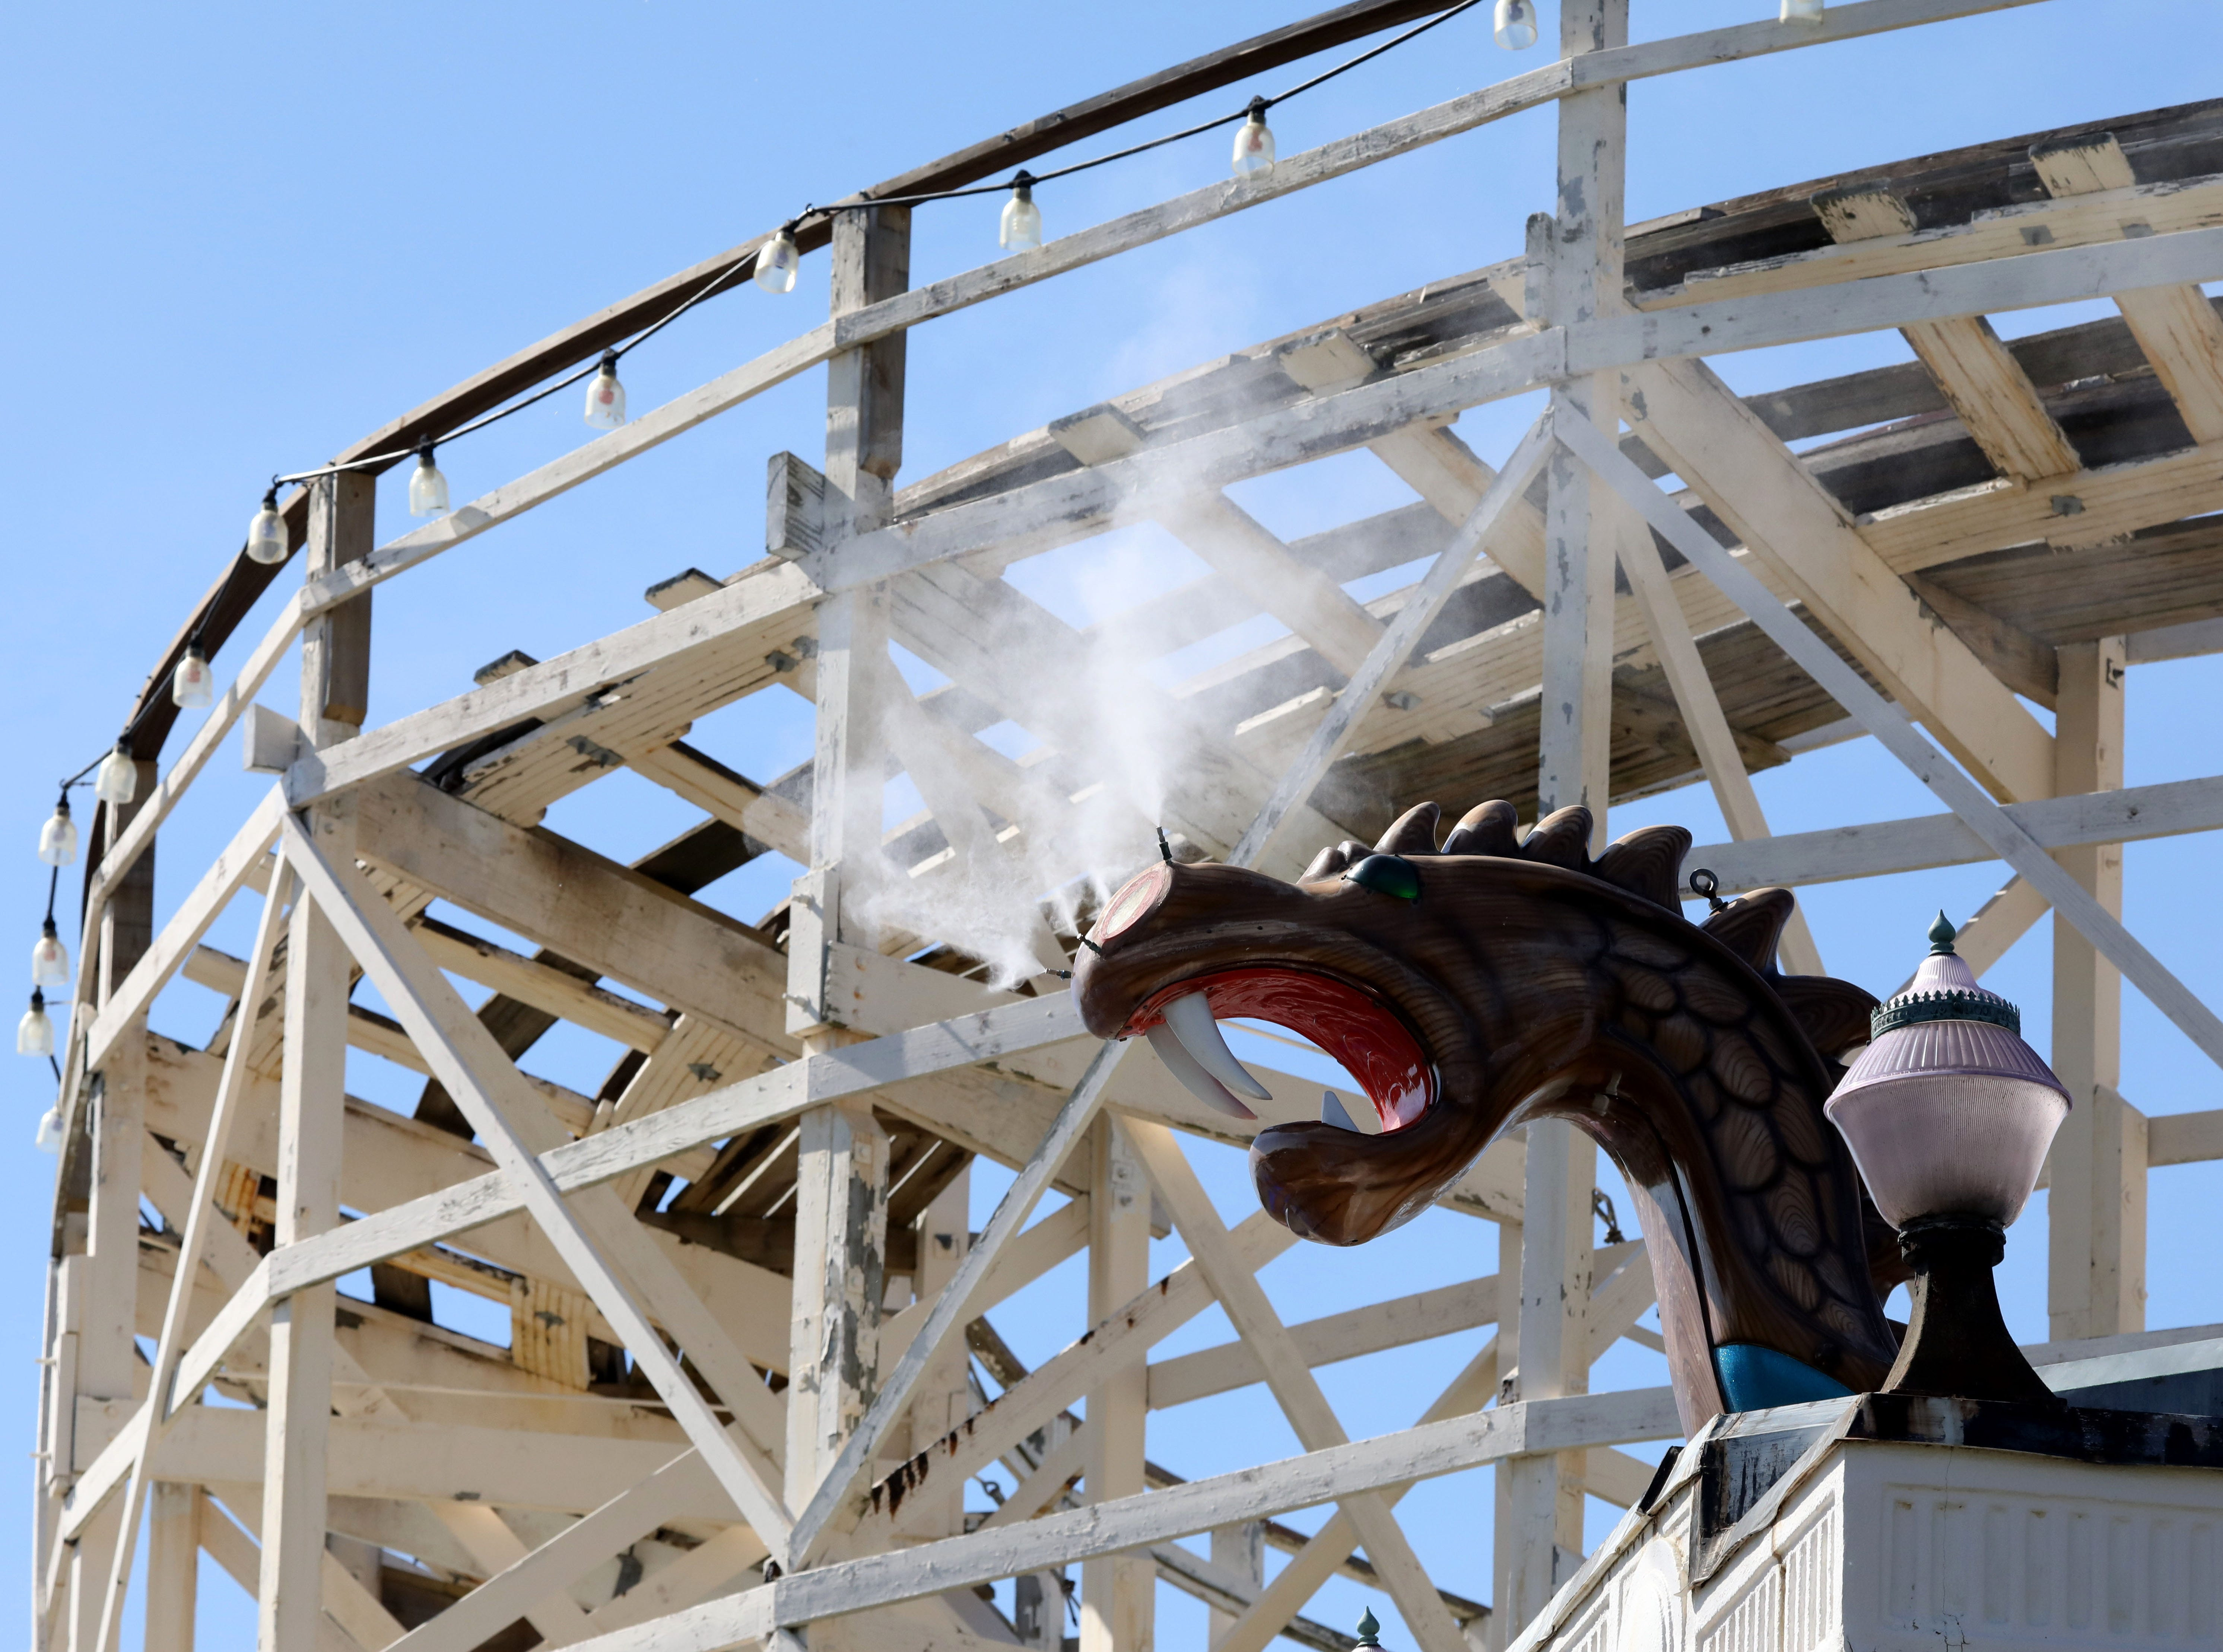 A dragon snorts out steam in front of the Dragon Coaster during opening day at Playland in Rye, May 11, 2019.